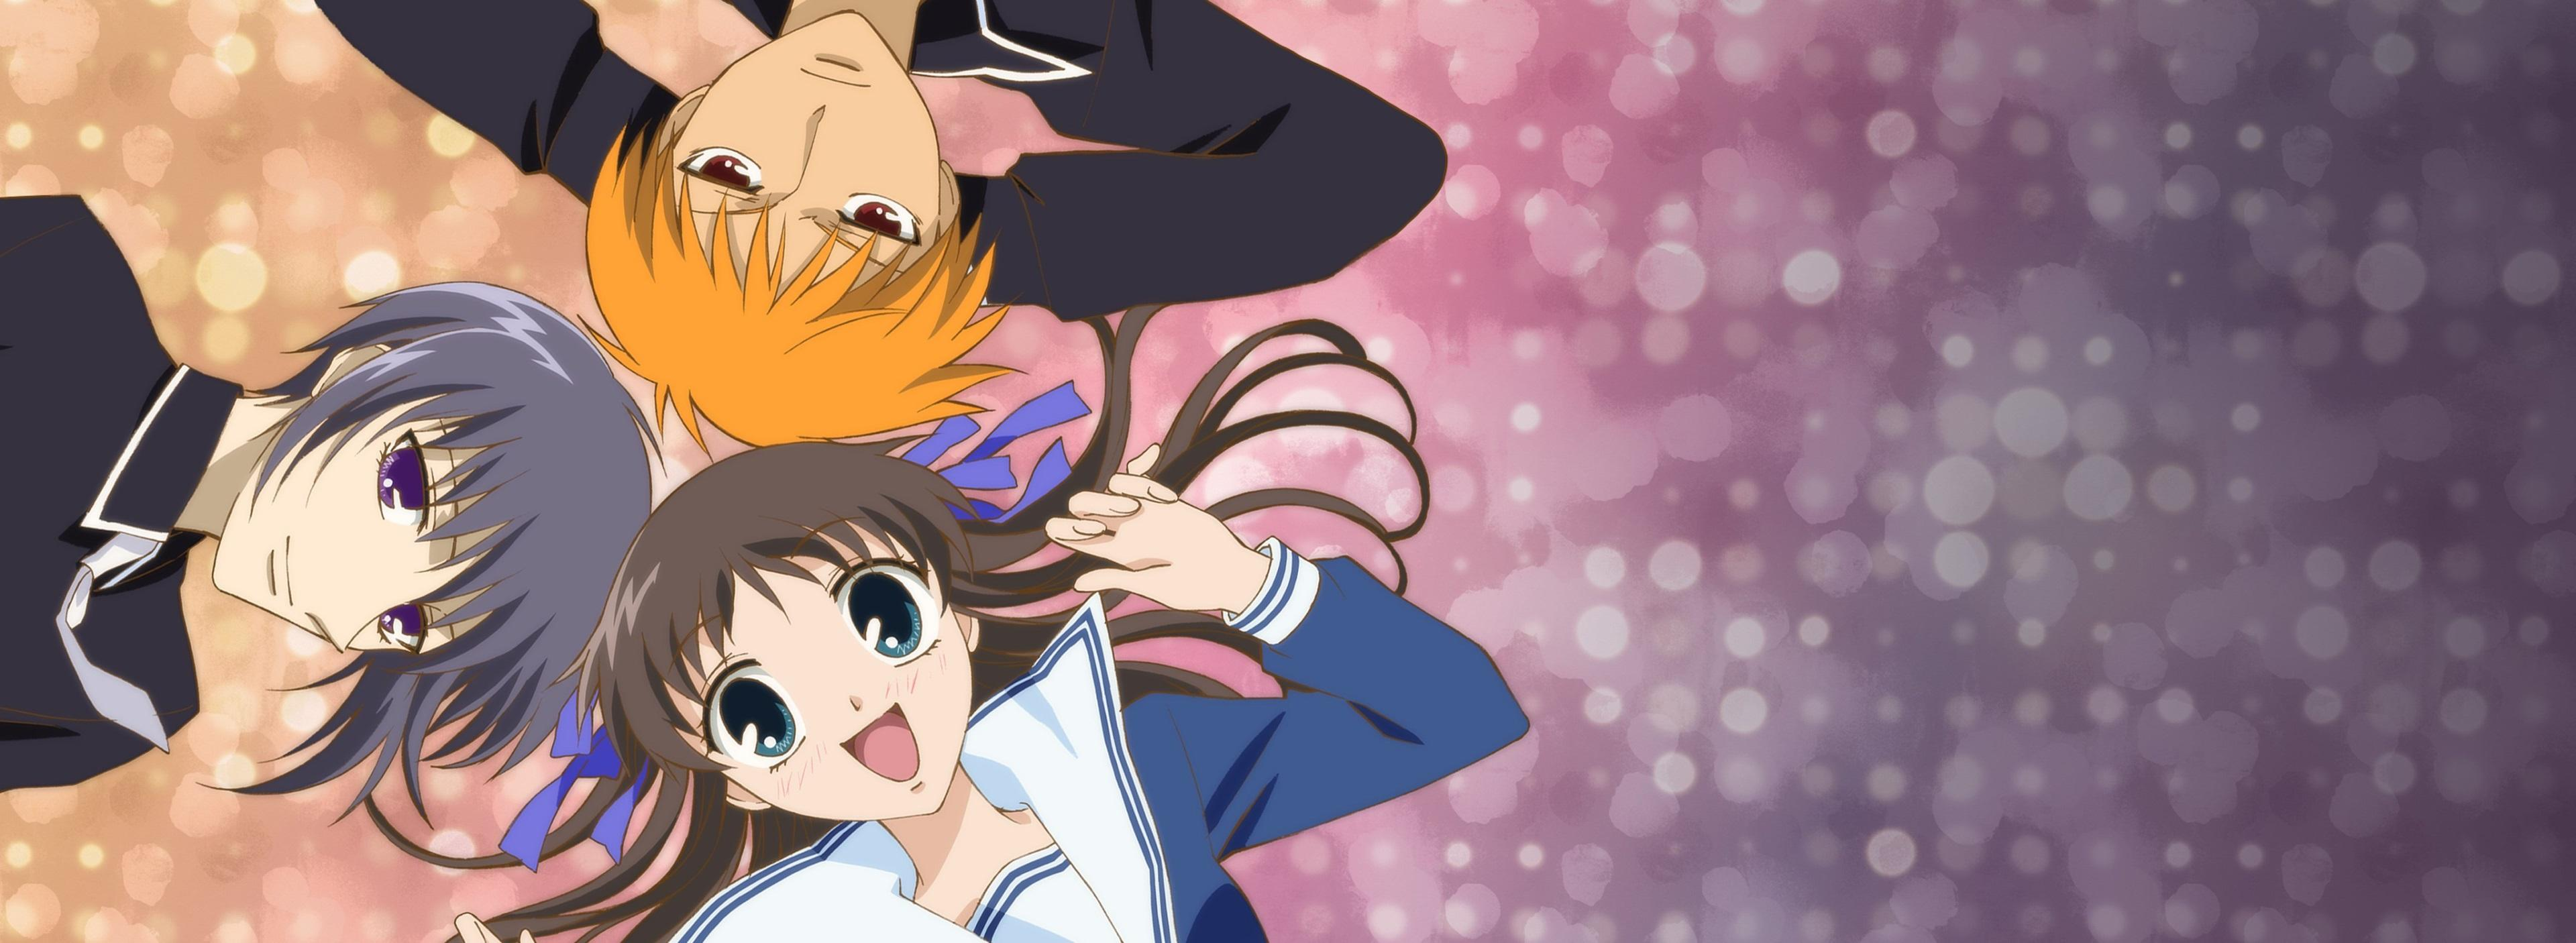 2742224 3840x1406 fruits basket 4k hd wallpapers high